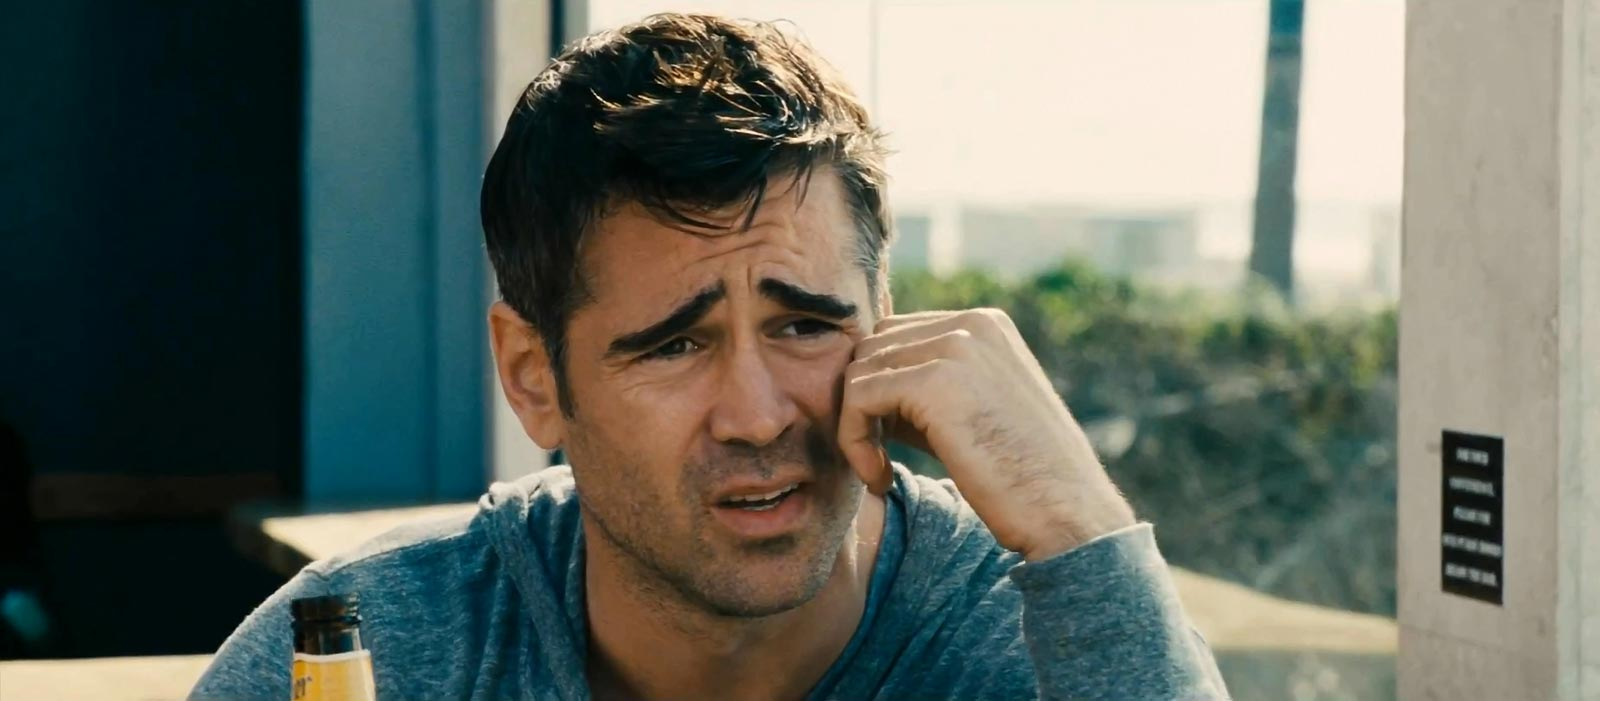 How To Have A Colin Farrell Film Festival